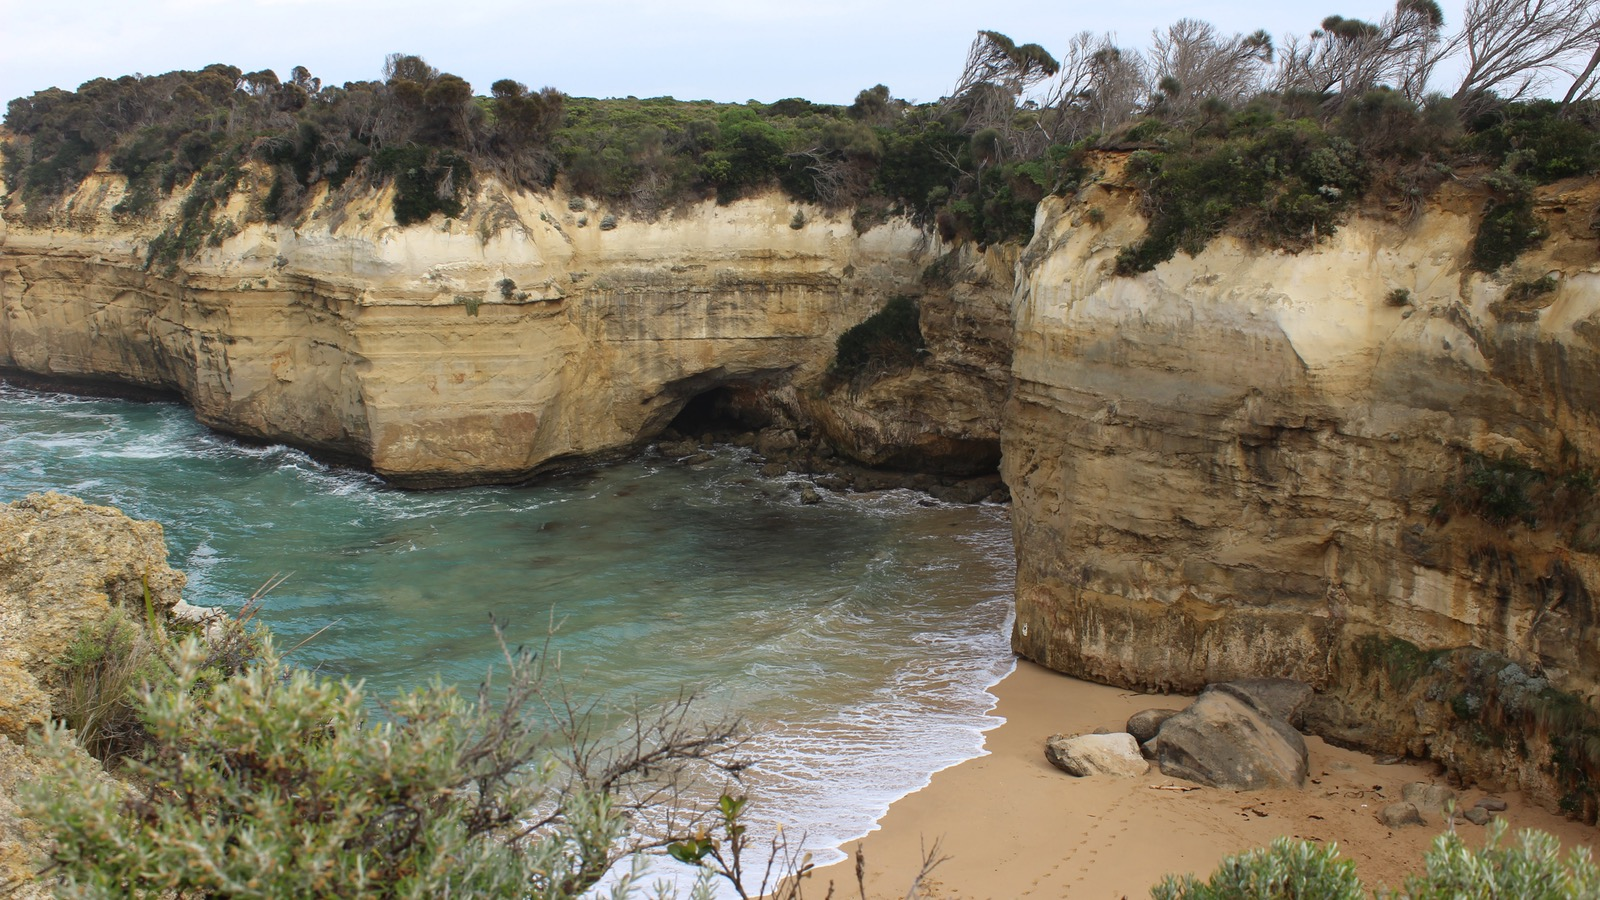 Ship Wrecks and Stories on tour - the aussie bloke way